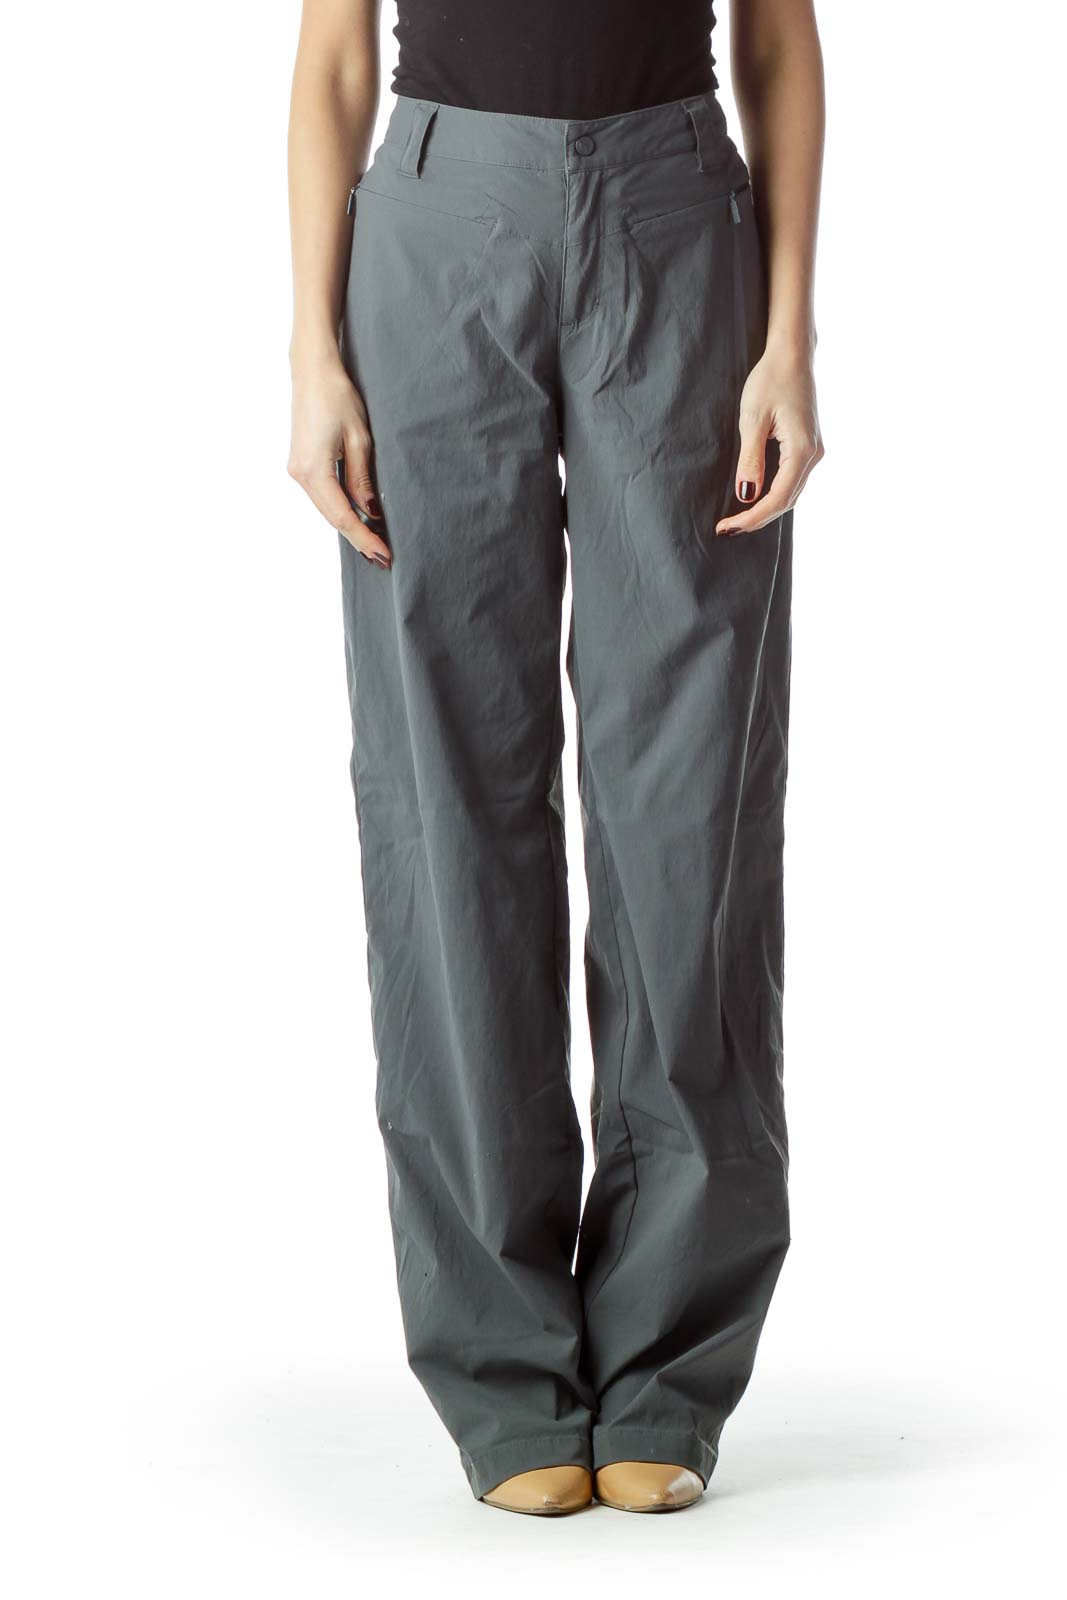 Gray Stretch Straight Leg Outdoor Pants